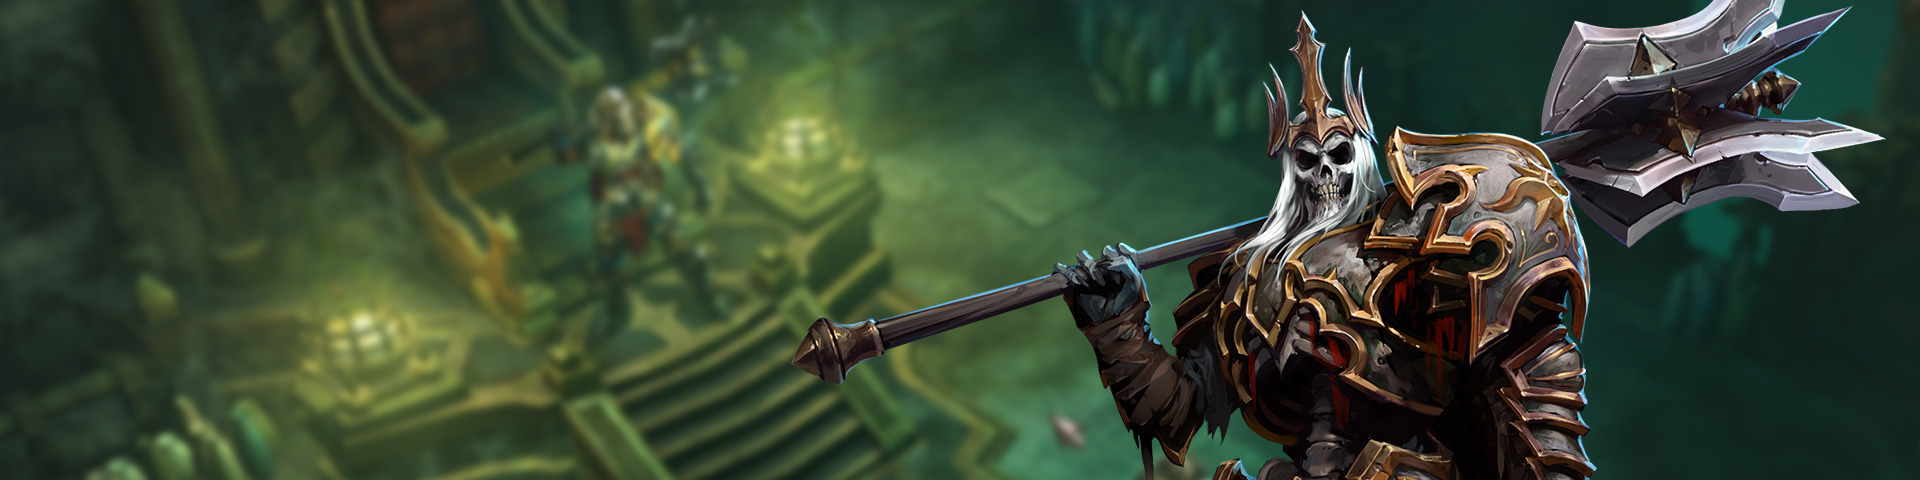 Undying Mastery Bruiser Leoric Guide Articles Tempo Storm Builds for every hero and tier list by liquid cris. undying mastery bruiser leoric guide